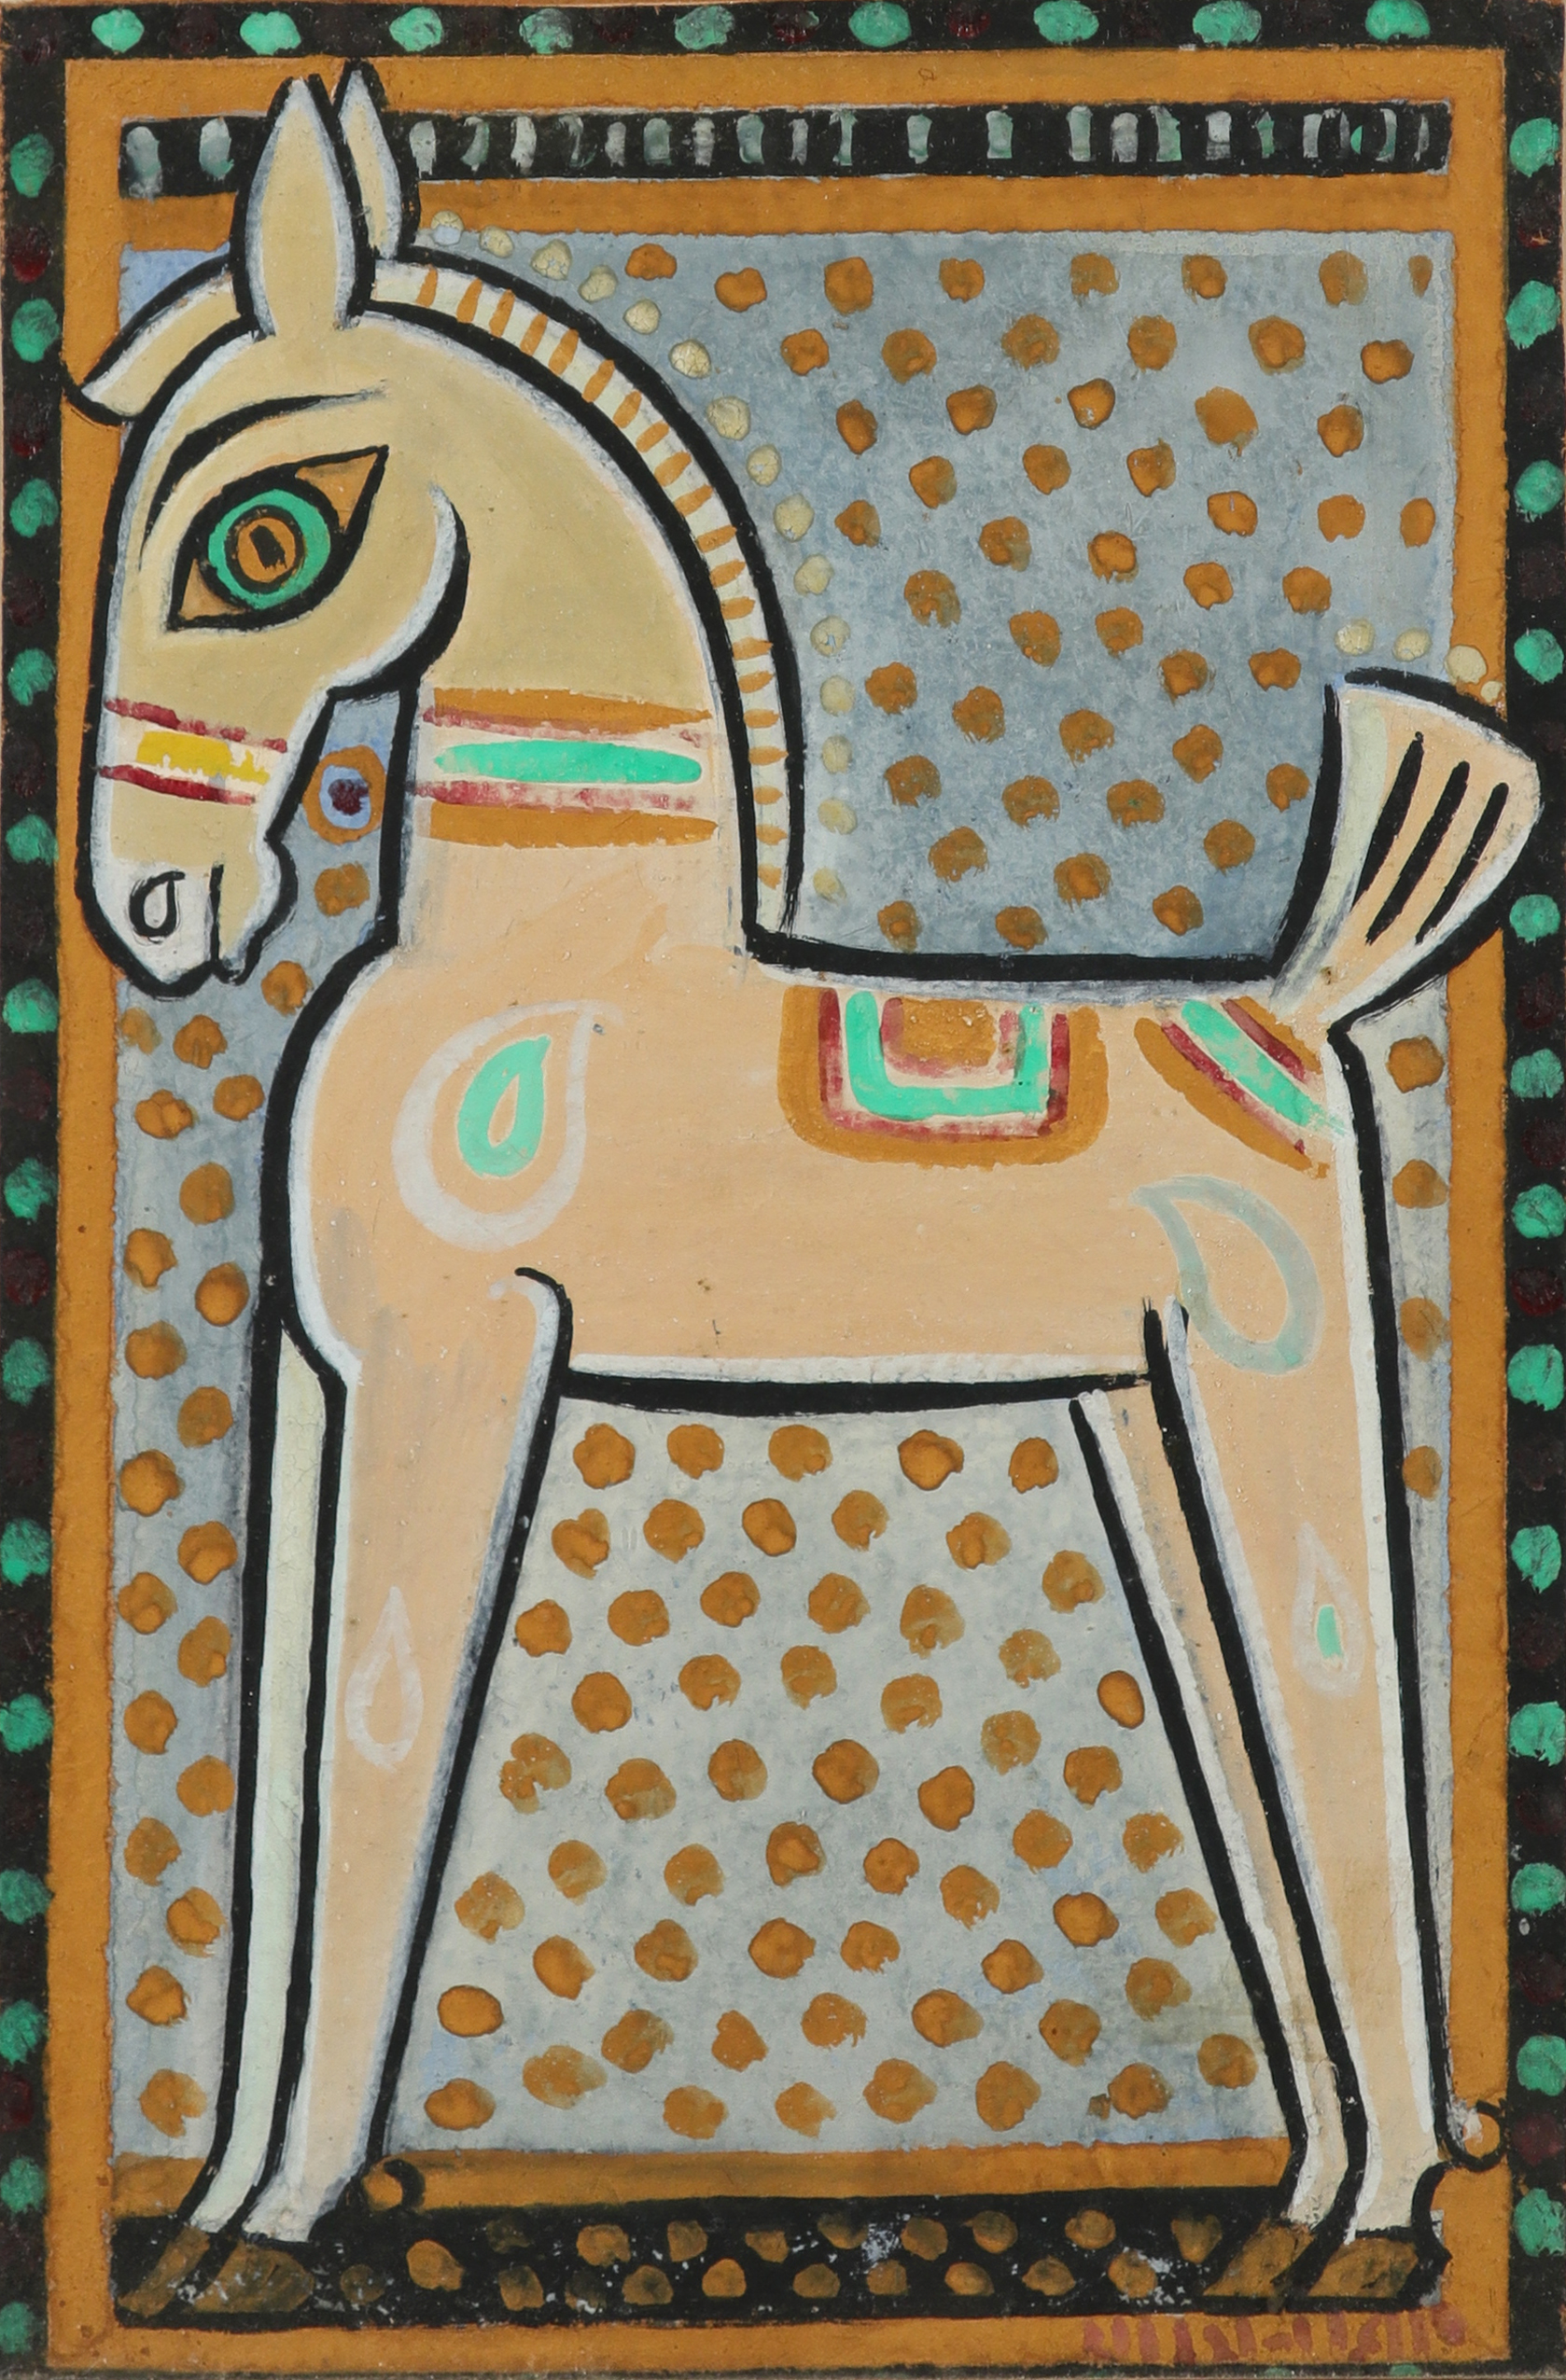 JAMINI ROY (1887 - 1972) Horse, c.1940 Tempera on card Signed lower right, the backboard inscribed by Maurice Draper 'Jamini Roy/ Calcutta/ 1940' 39.4 x 29.6 cm 15 1/2 x 11 5/8 in PROVENANCE Given by the artist to Maurice Draper (1907-2012), Calcutta, 1940 (by repute in exchange for one of his paintings); Thence by descent; Grosvenor Gallery, London Maurice Draper lived and worked in India from 1930-1945. Employed as an art teacher at La Martiniere school in Calcutta he travelled widely, making sketches and watercolours of the country. A contemporary review of an exhibition of Draper's work mentions the influence of Jamini Roy, and it seems the two artists met and exchanged works in 1940. Following spells in Lucknow and Darjeeling, Draper and his family returned to the UK in 1945.